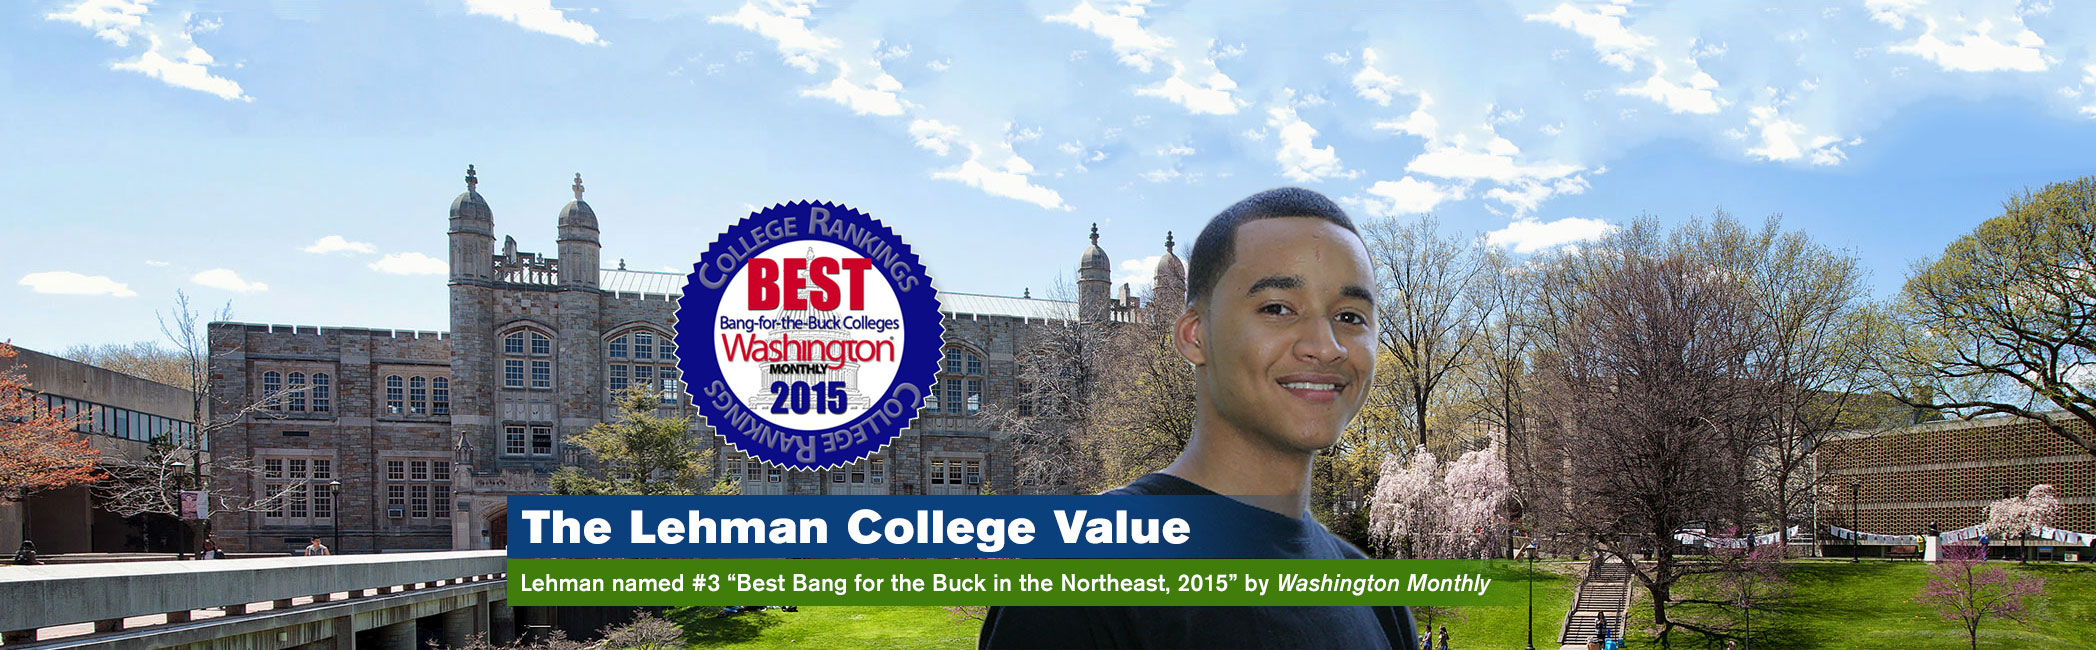 Banner Image of The Lehman College Value: Lehman named #3 'Best Bang for Your Buck in the Northeast, 2015' by Washington Monthly.